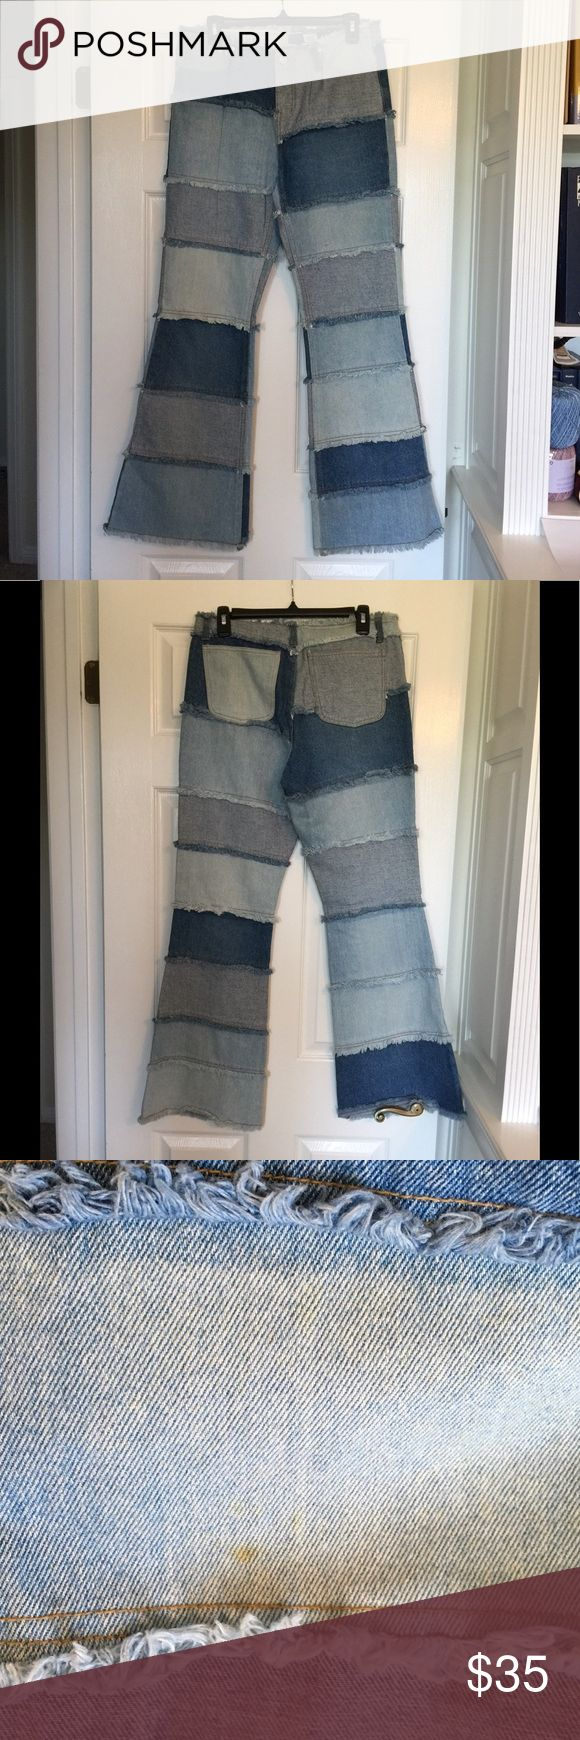 "Peppe Peluso Denim Jeans ~ Size 9 ~ New Sample Peppe Peluso Denim Jeans ~ Size 9 ~ New Sample ~ Patchwork and Frayed Denim ~ Approximate Measurements Lying Flat: Waist 15"" Inseam 32"" ~  PLEASE NOTE: ONE SMALL SPOT ON FRONT LEFT LEG PICTURED Peppe Peluso Jeans Flare & Wide Leg"